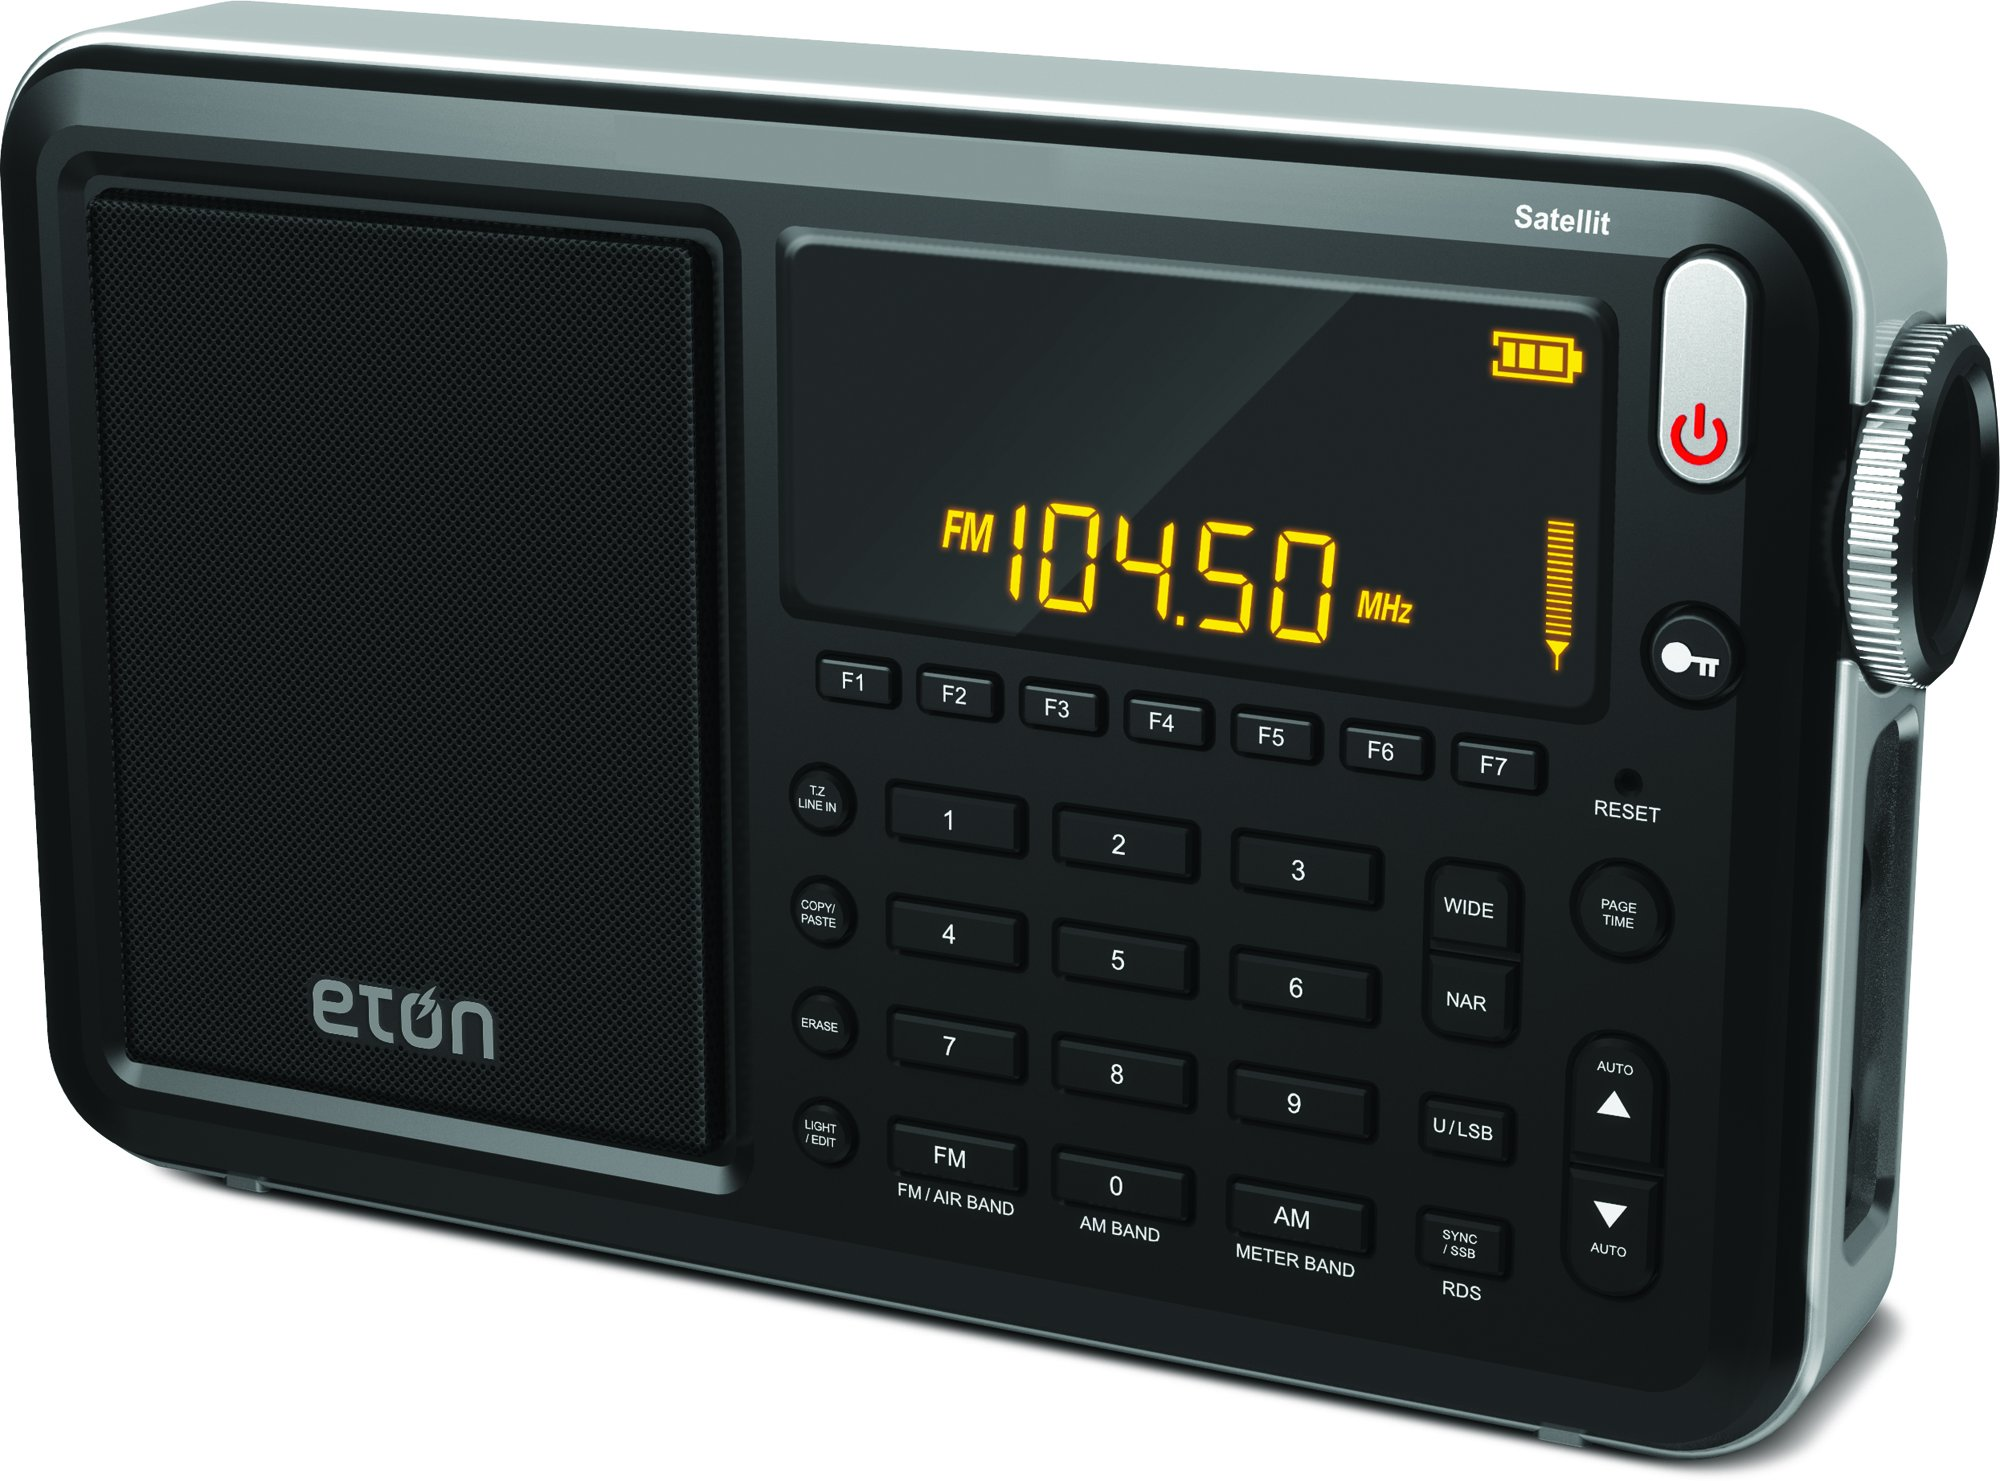 Eton Ngwsatb Satellit Am Fm With Rds And Shortwave Radio Manual Guide